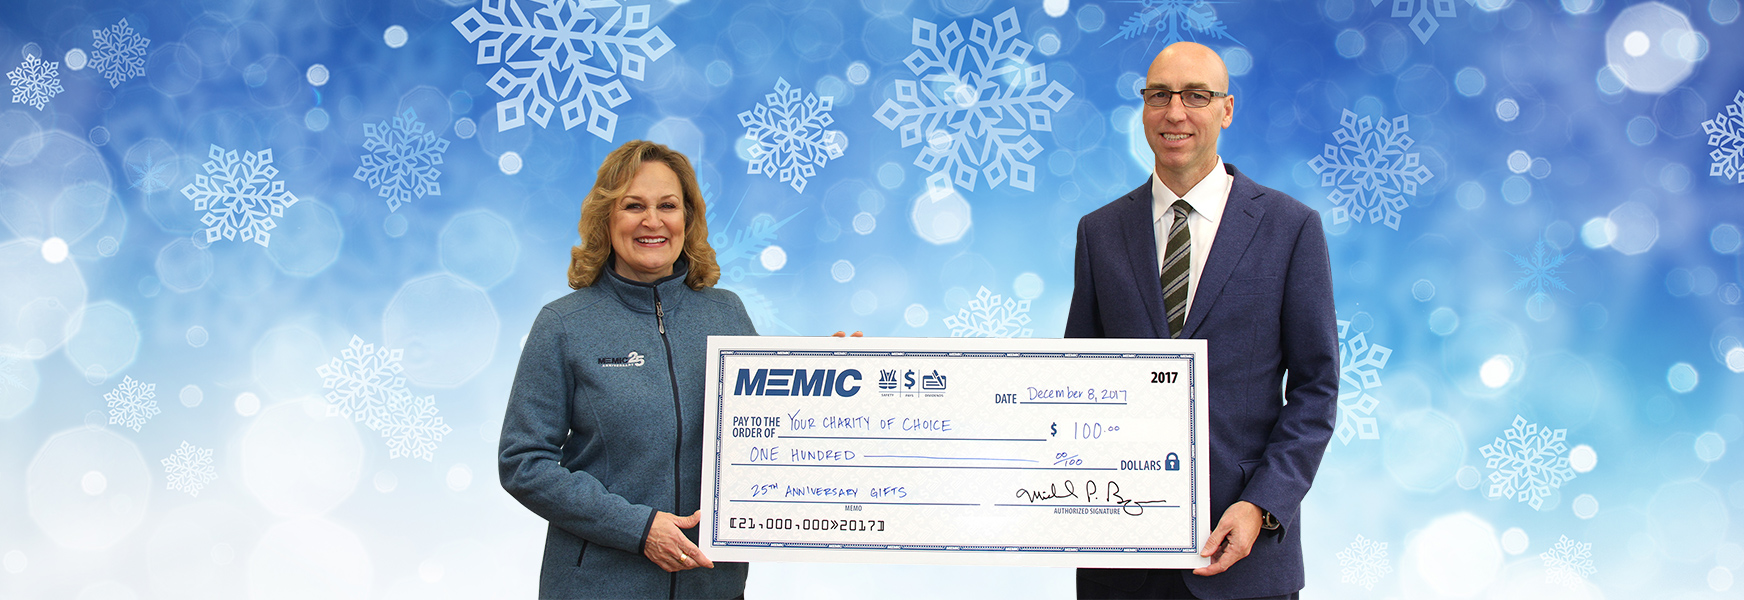 Catherine Lamson and Mike Bourque with big check